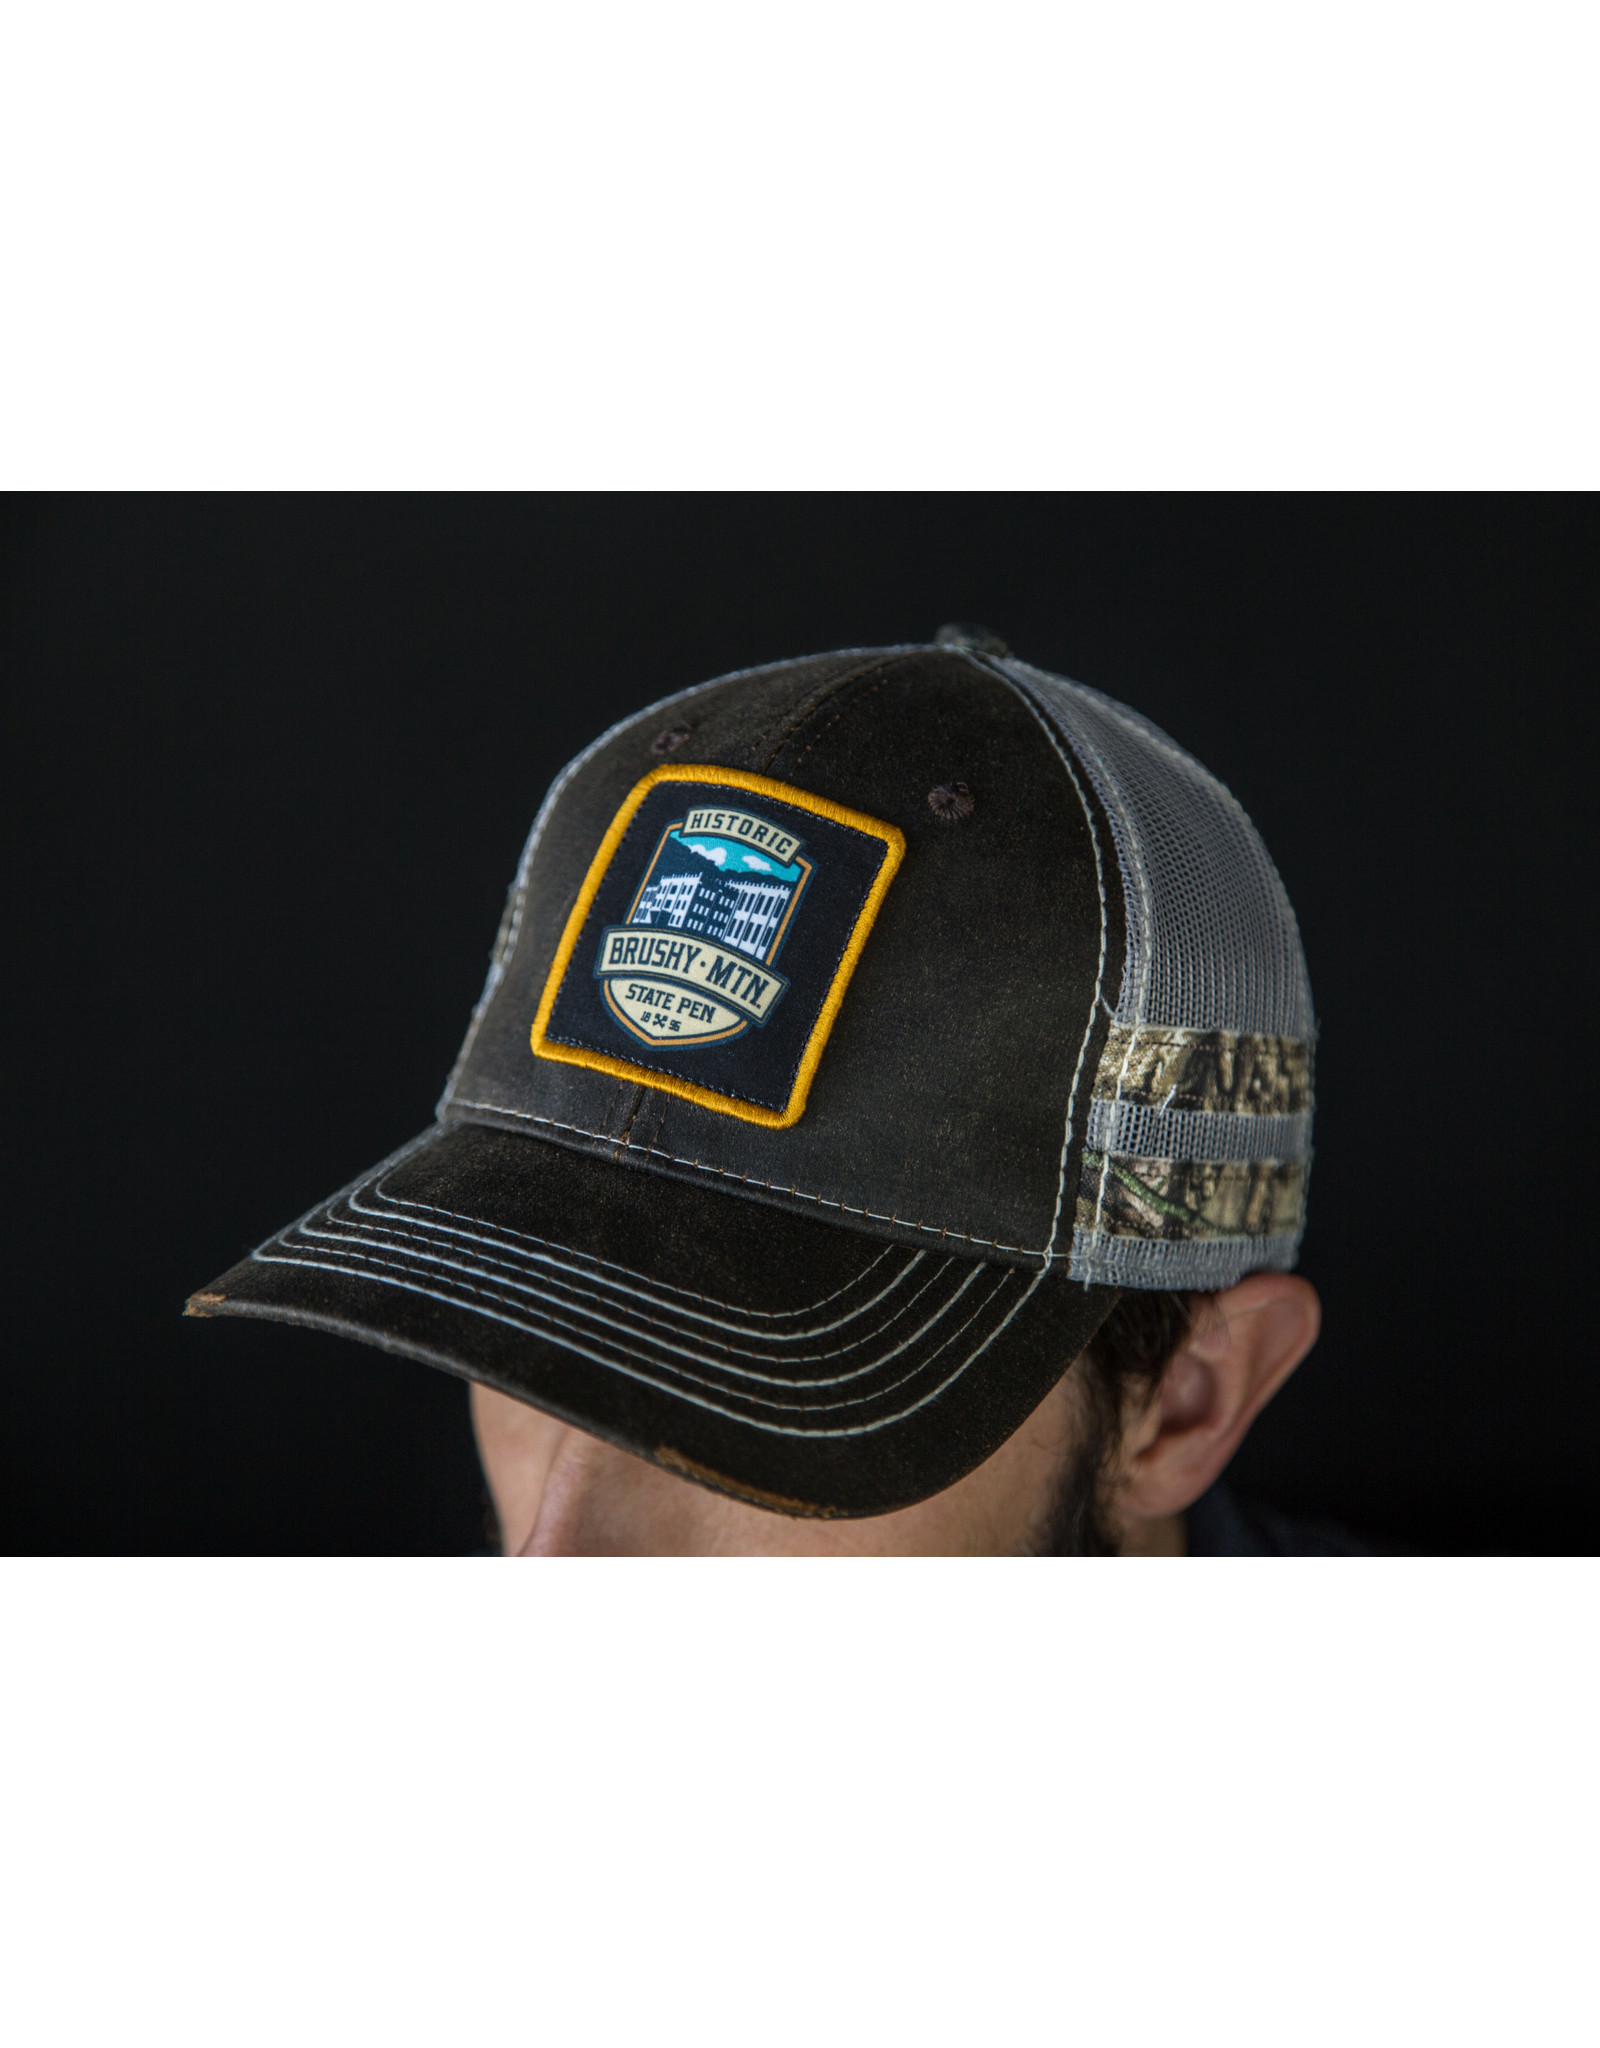 Outdoor Cap Camo/Lt. Gray/Brown Hat with Patch